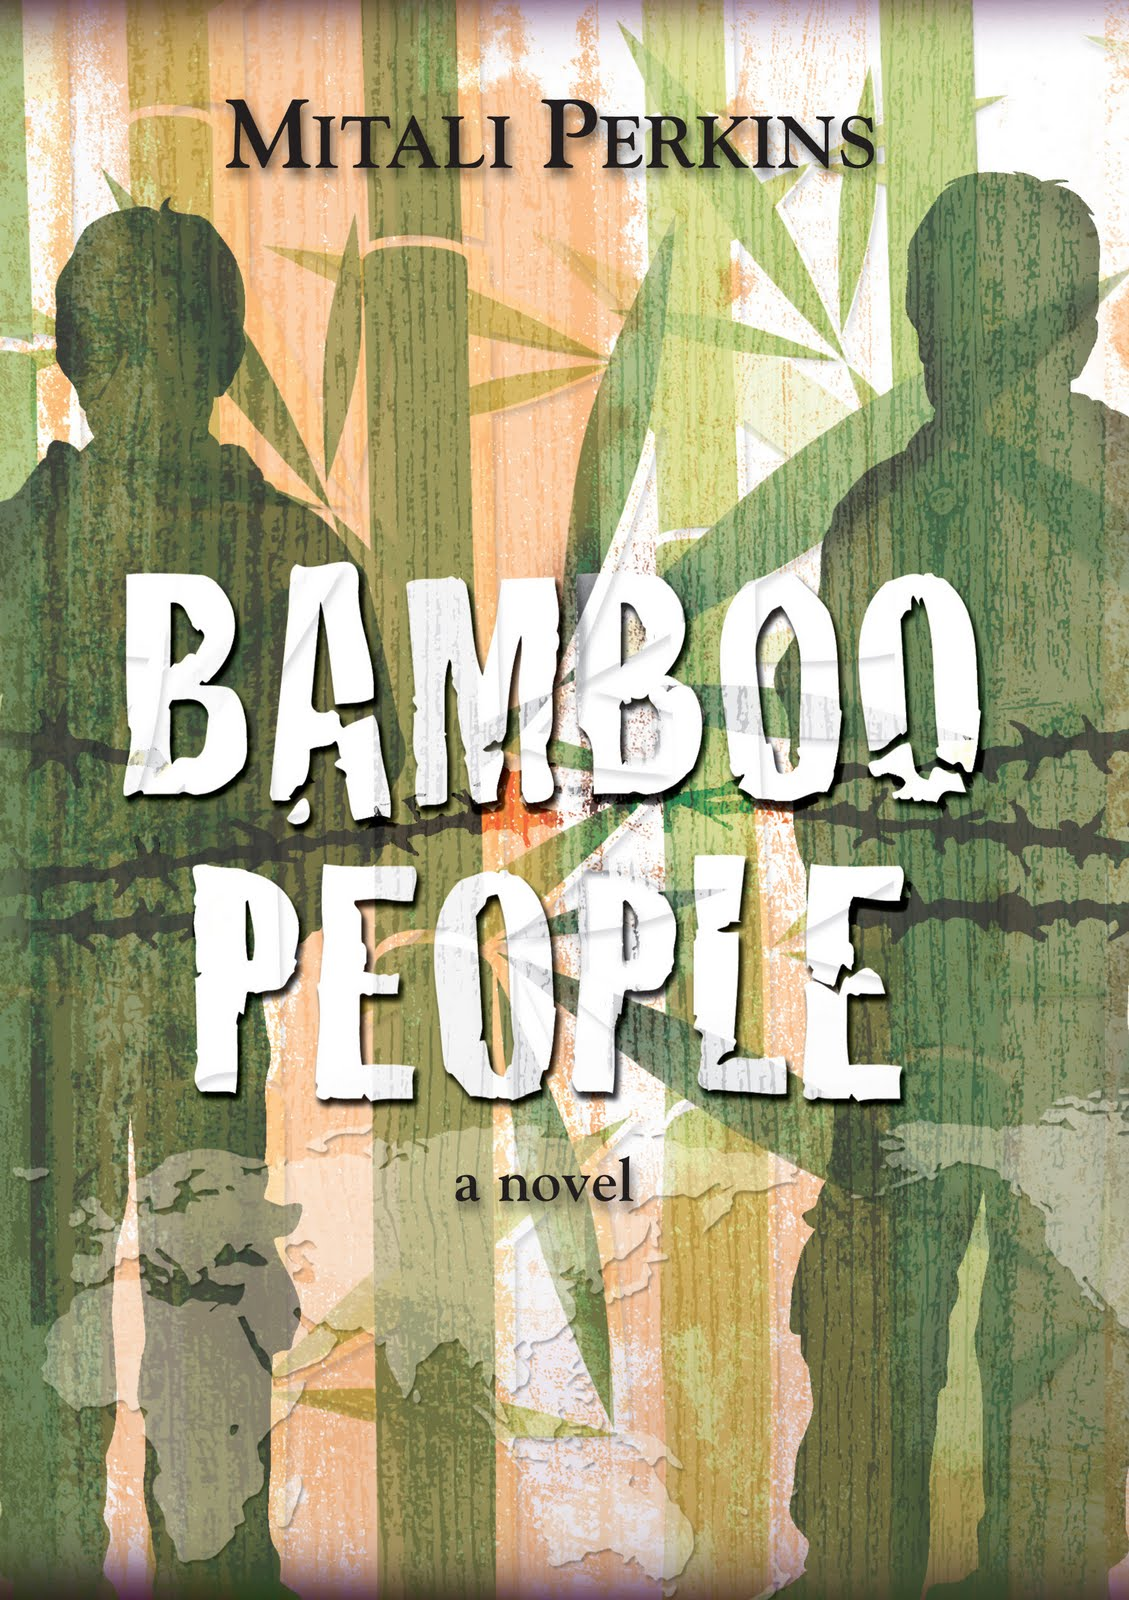 Bamboo%2BPeople%2Bcover%2B300%25255B1%25255D ... up to fuck cute teen boy's mouth & help him ride ramrod in special way: